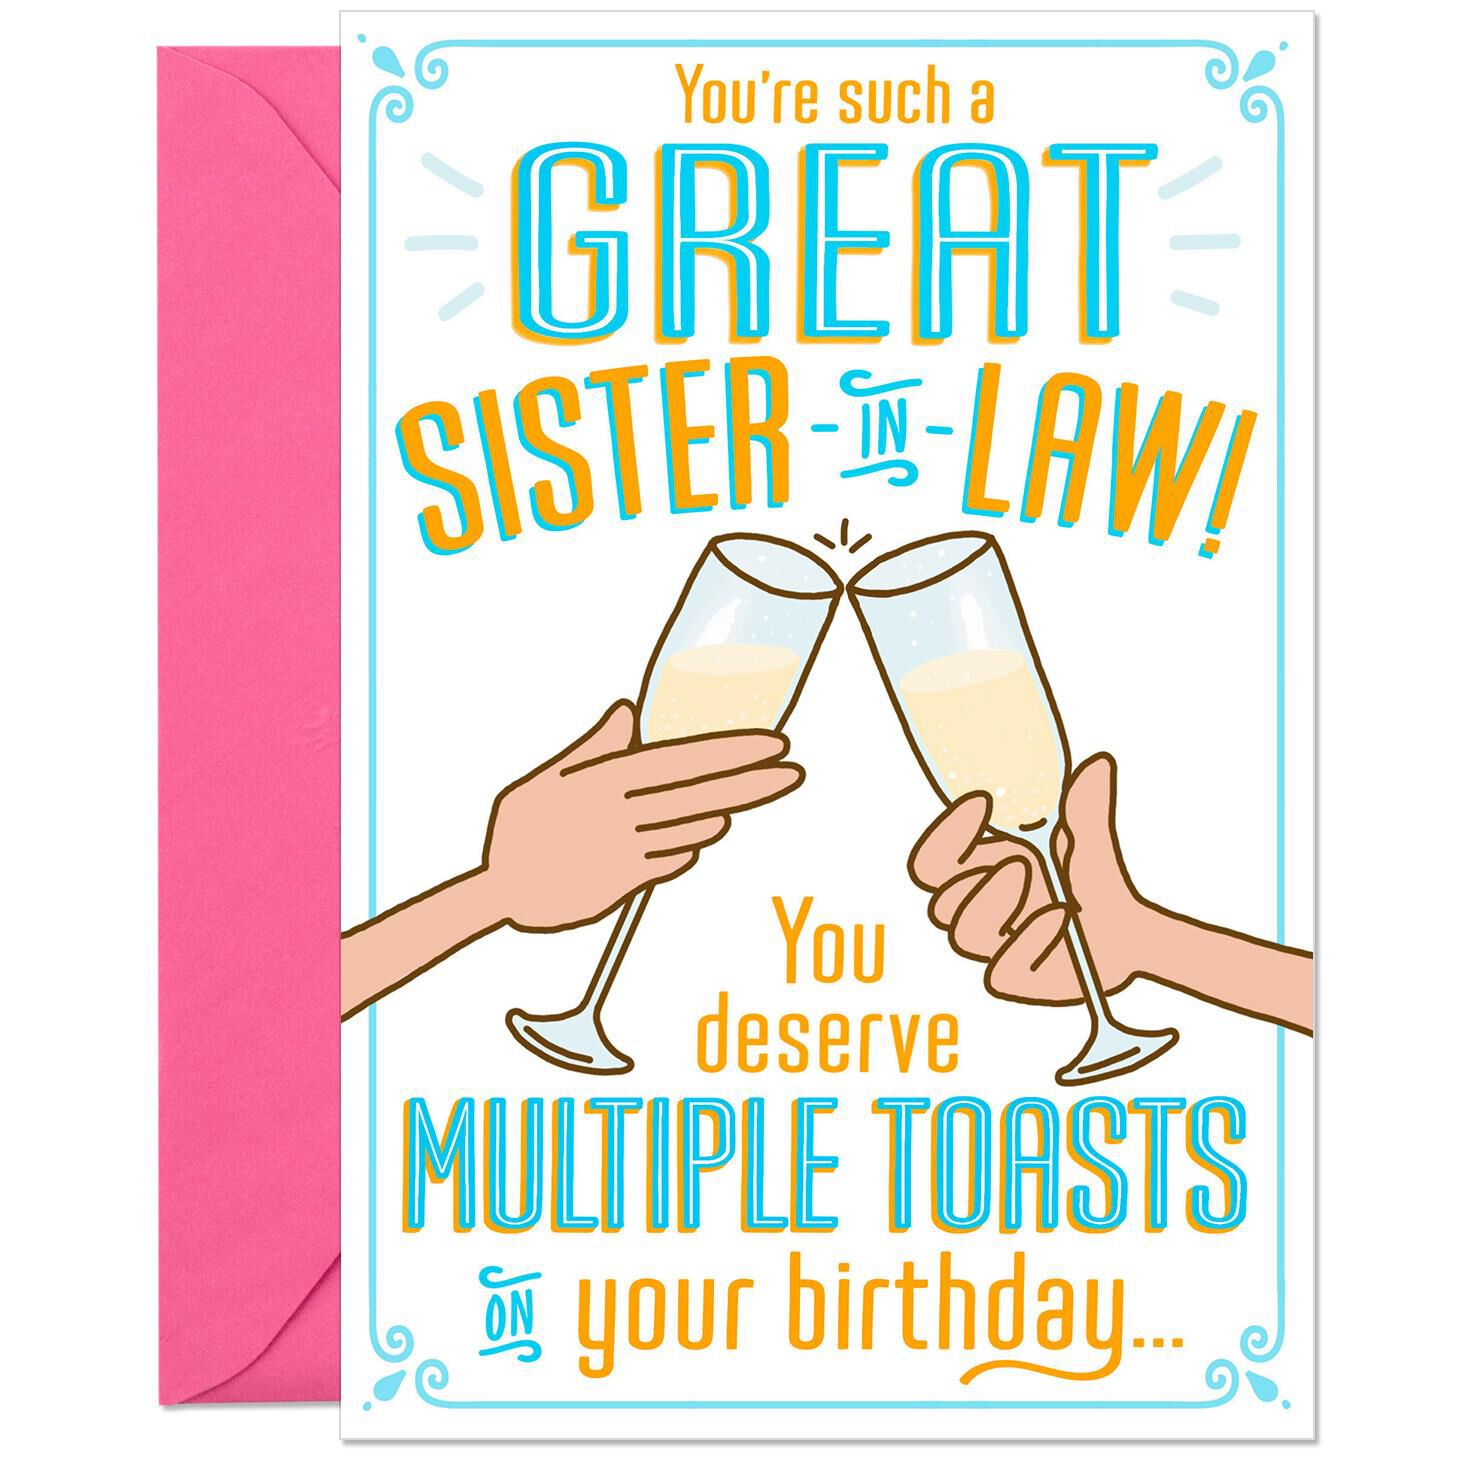 Multiple Toasts Funny Pop Up Birthday Card For Sisterinlaw Root Source Image Jpg 1024x1024 Ecard